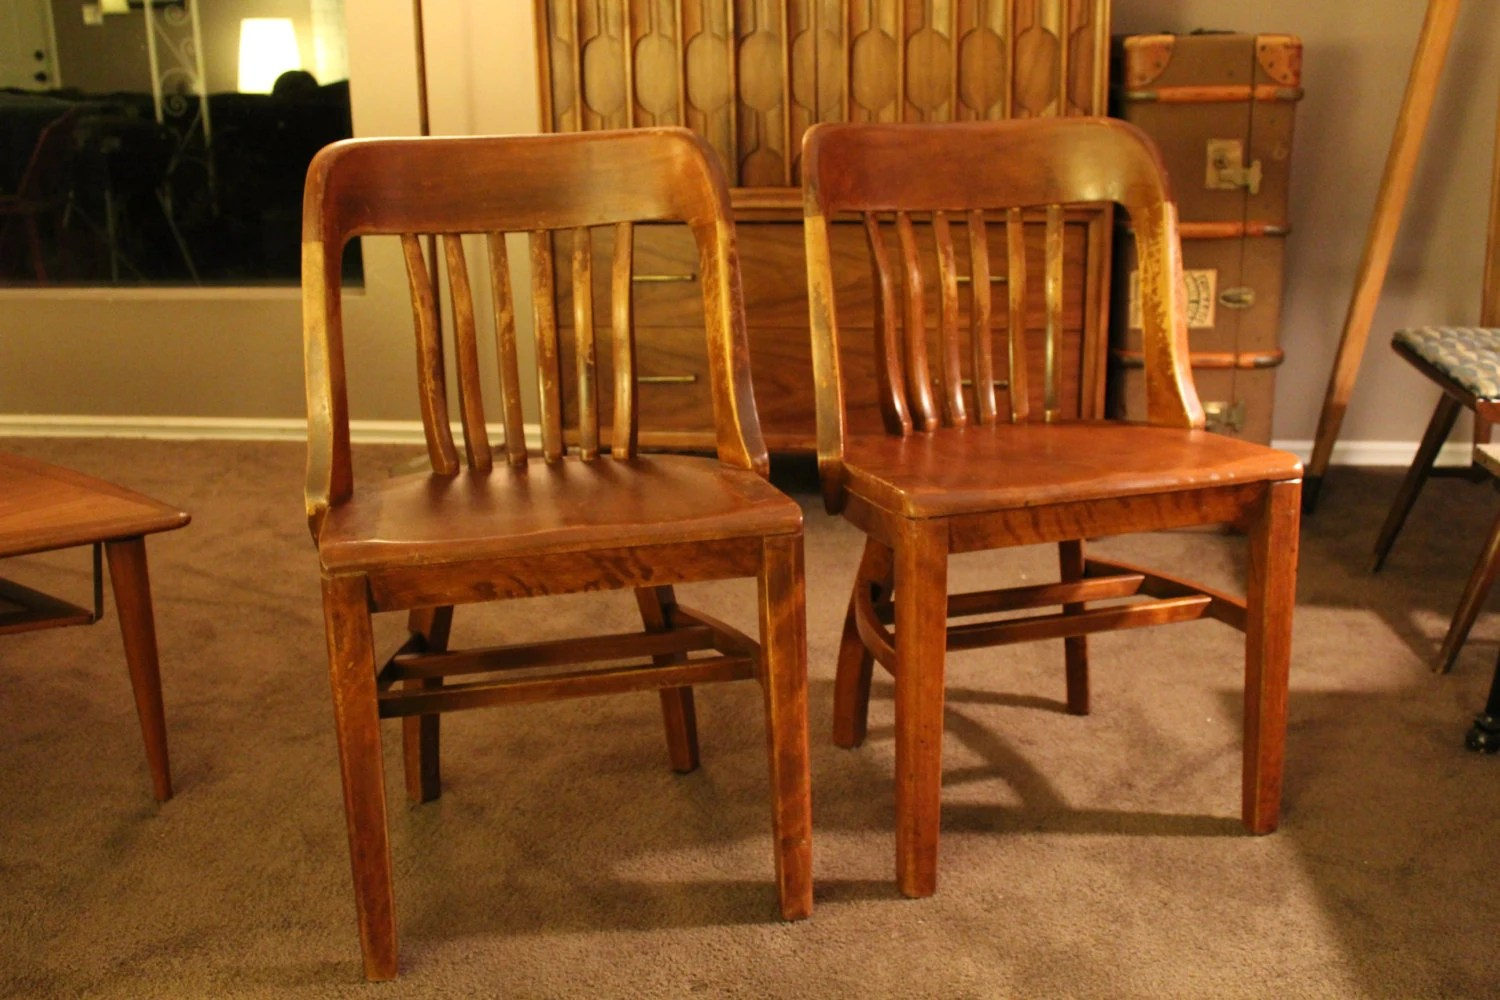 Wood Bankers Chair Pair Of Antique Wooden Banker 39s Office Chairs